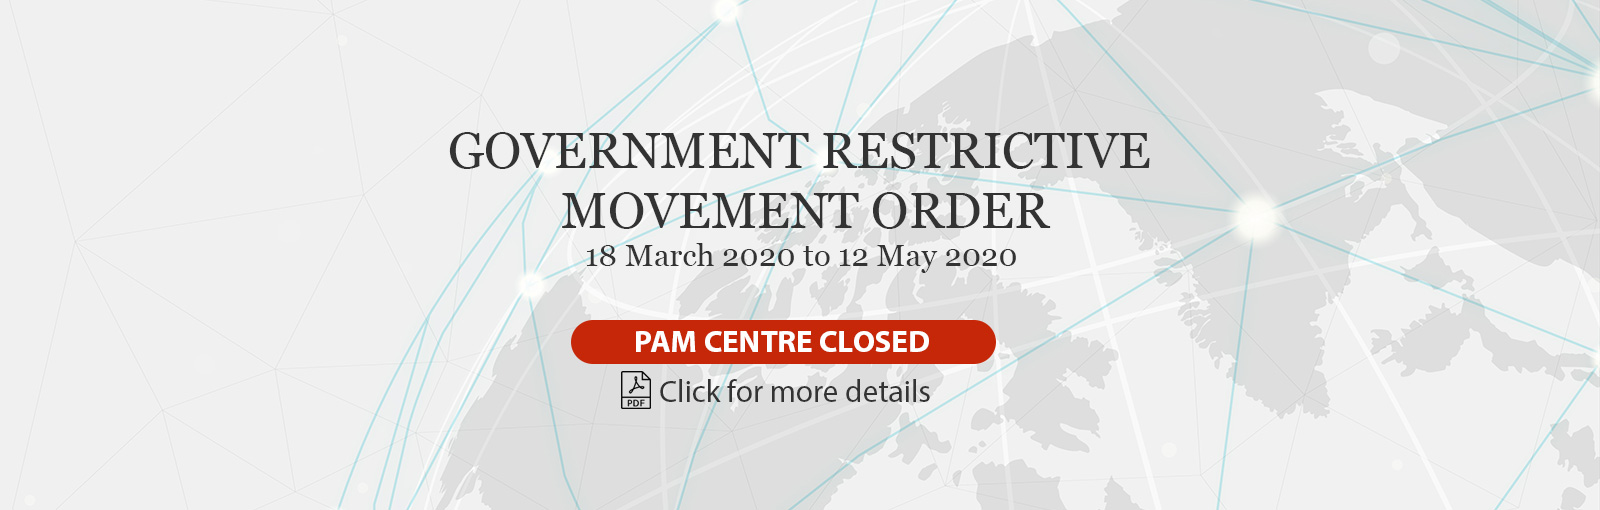 GOVERNMENT'S RESTRICTIVE MOVEMENT ORDER - PAM CENTRE CLOSED